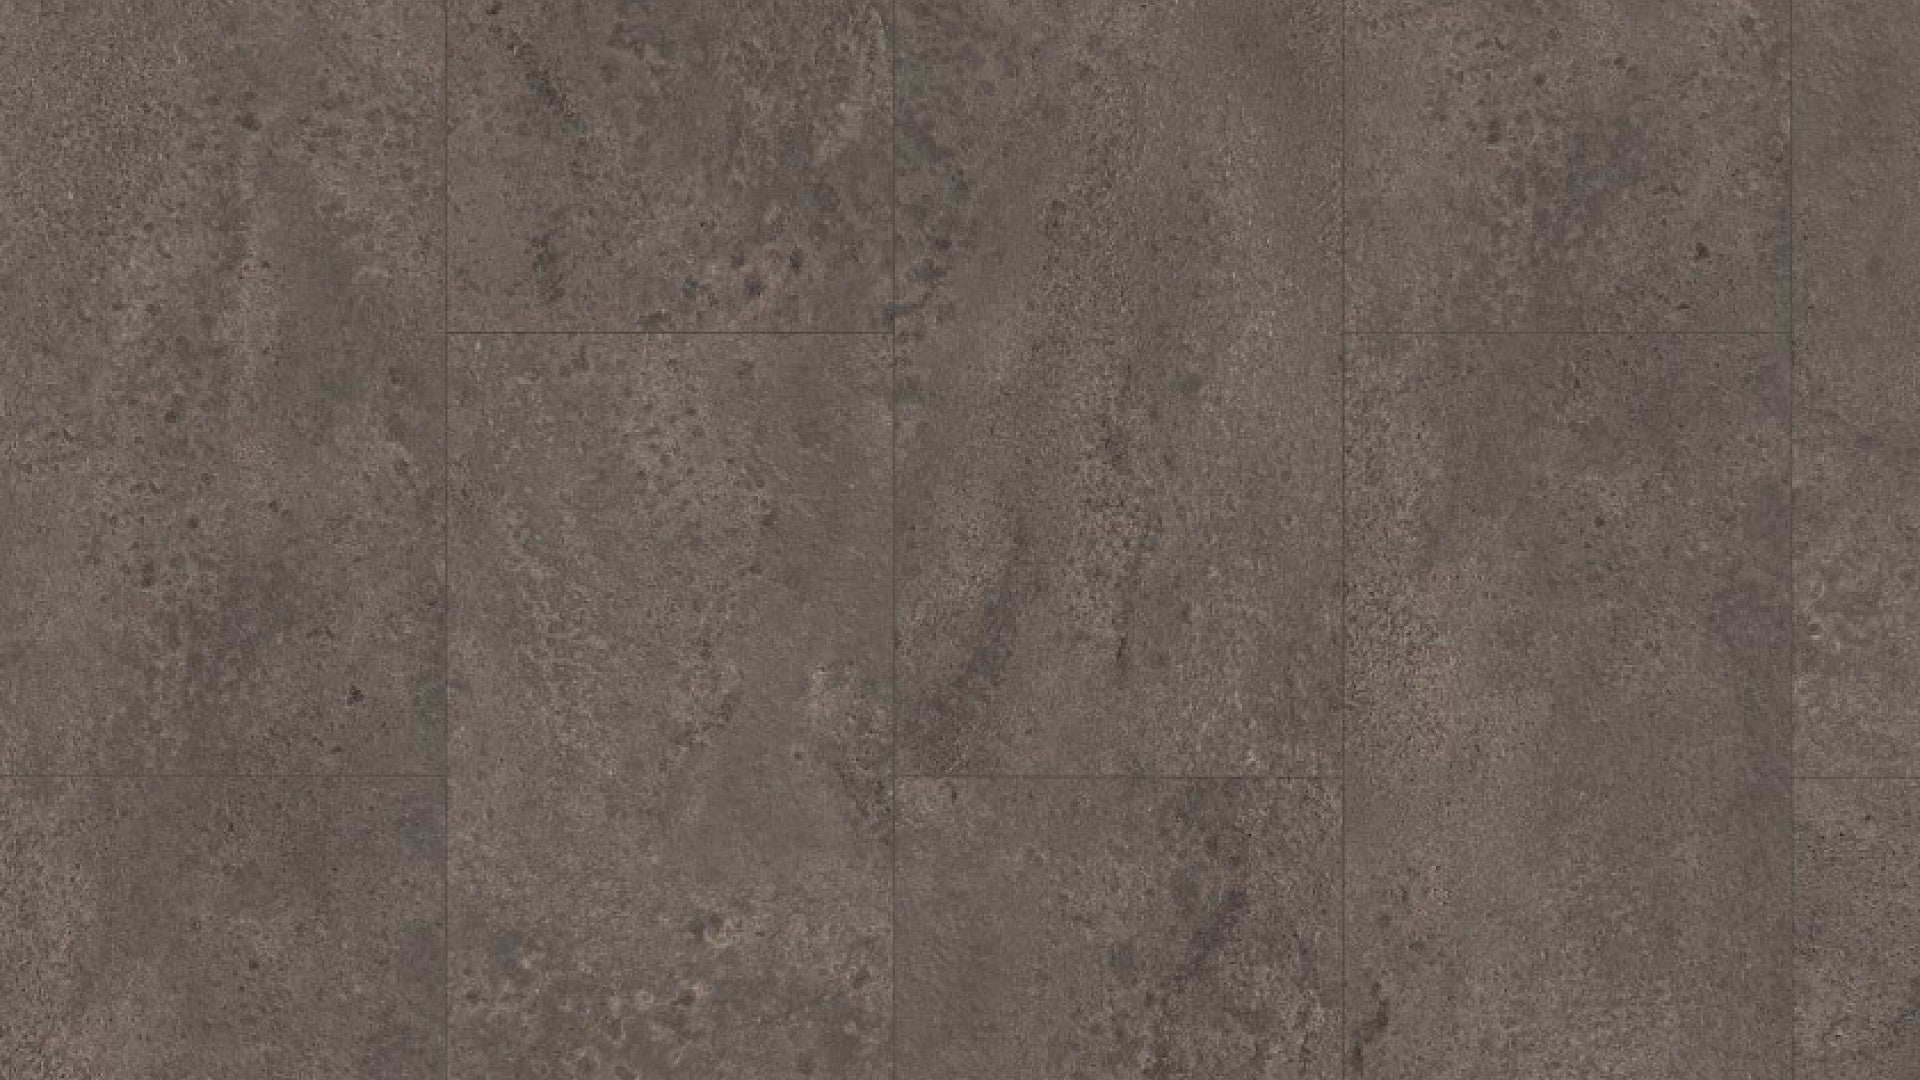 BROWN KARNAK GRANITE 8MM AQUA - Direct Flooring & Beds